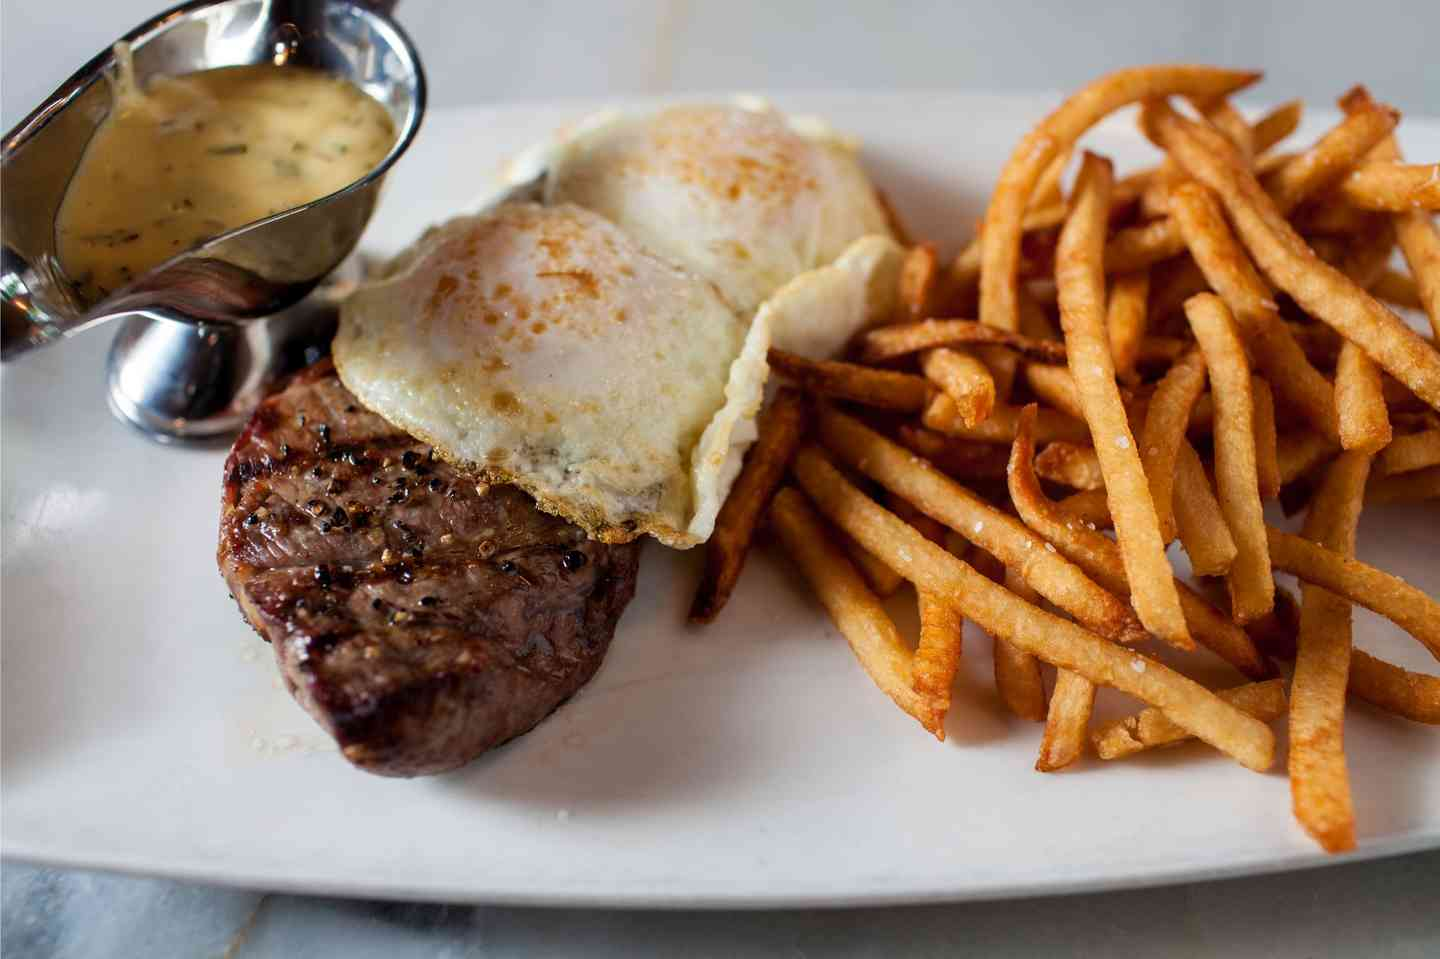 Steak and Eggs Frites*